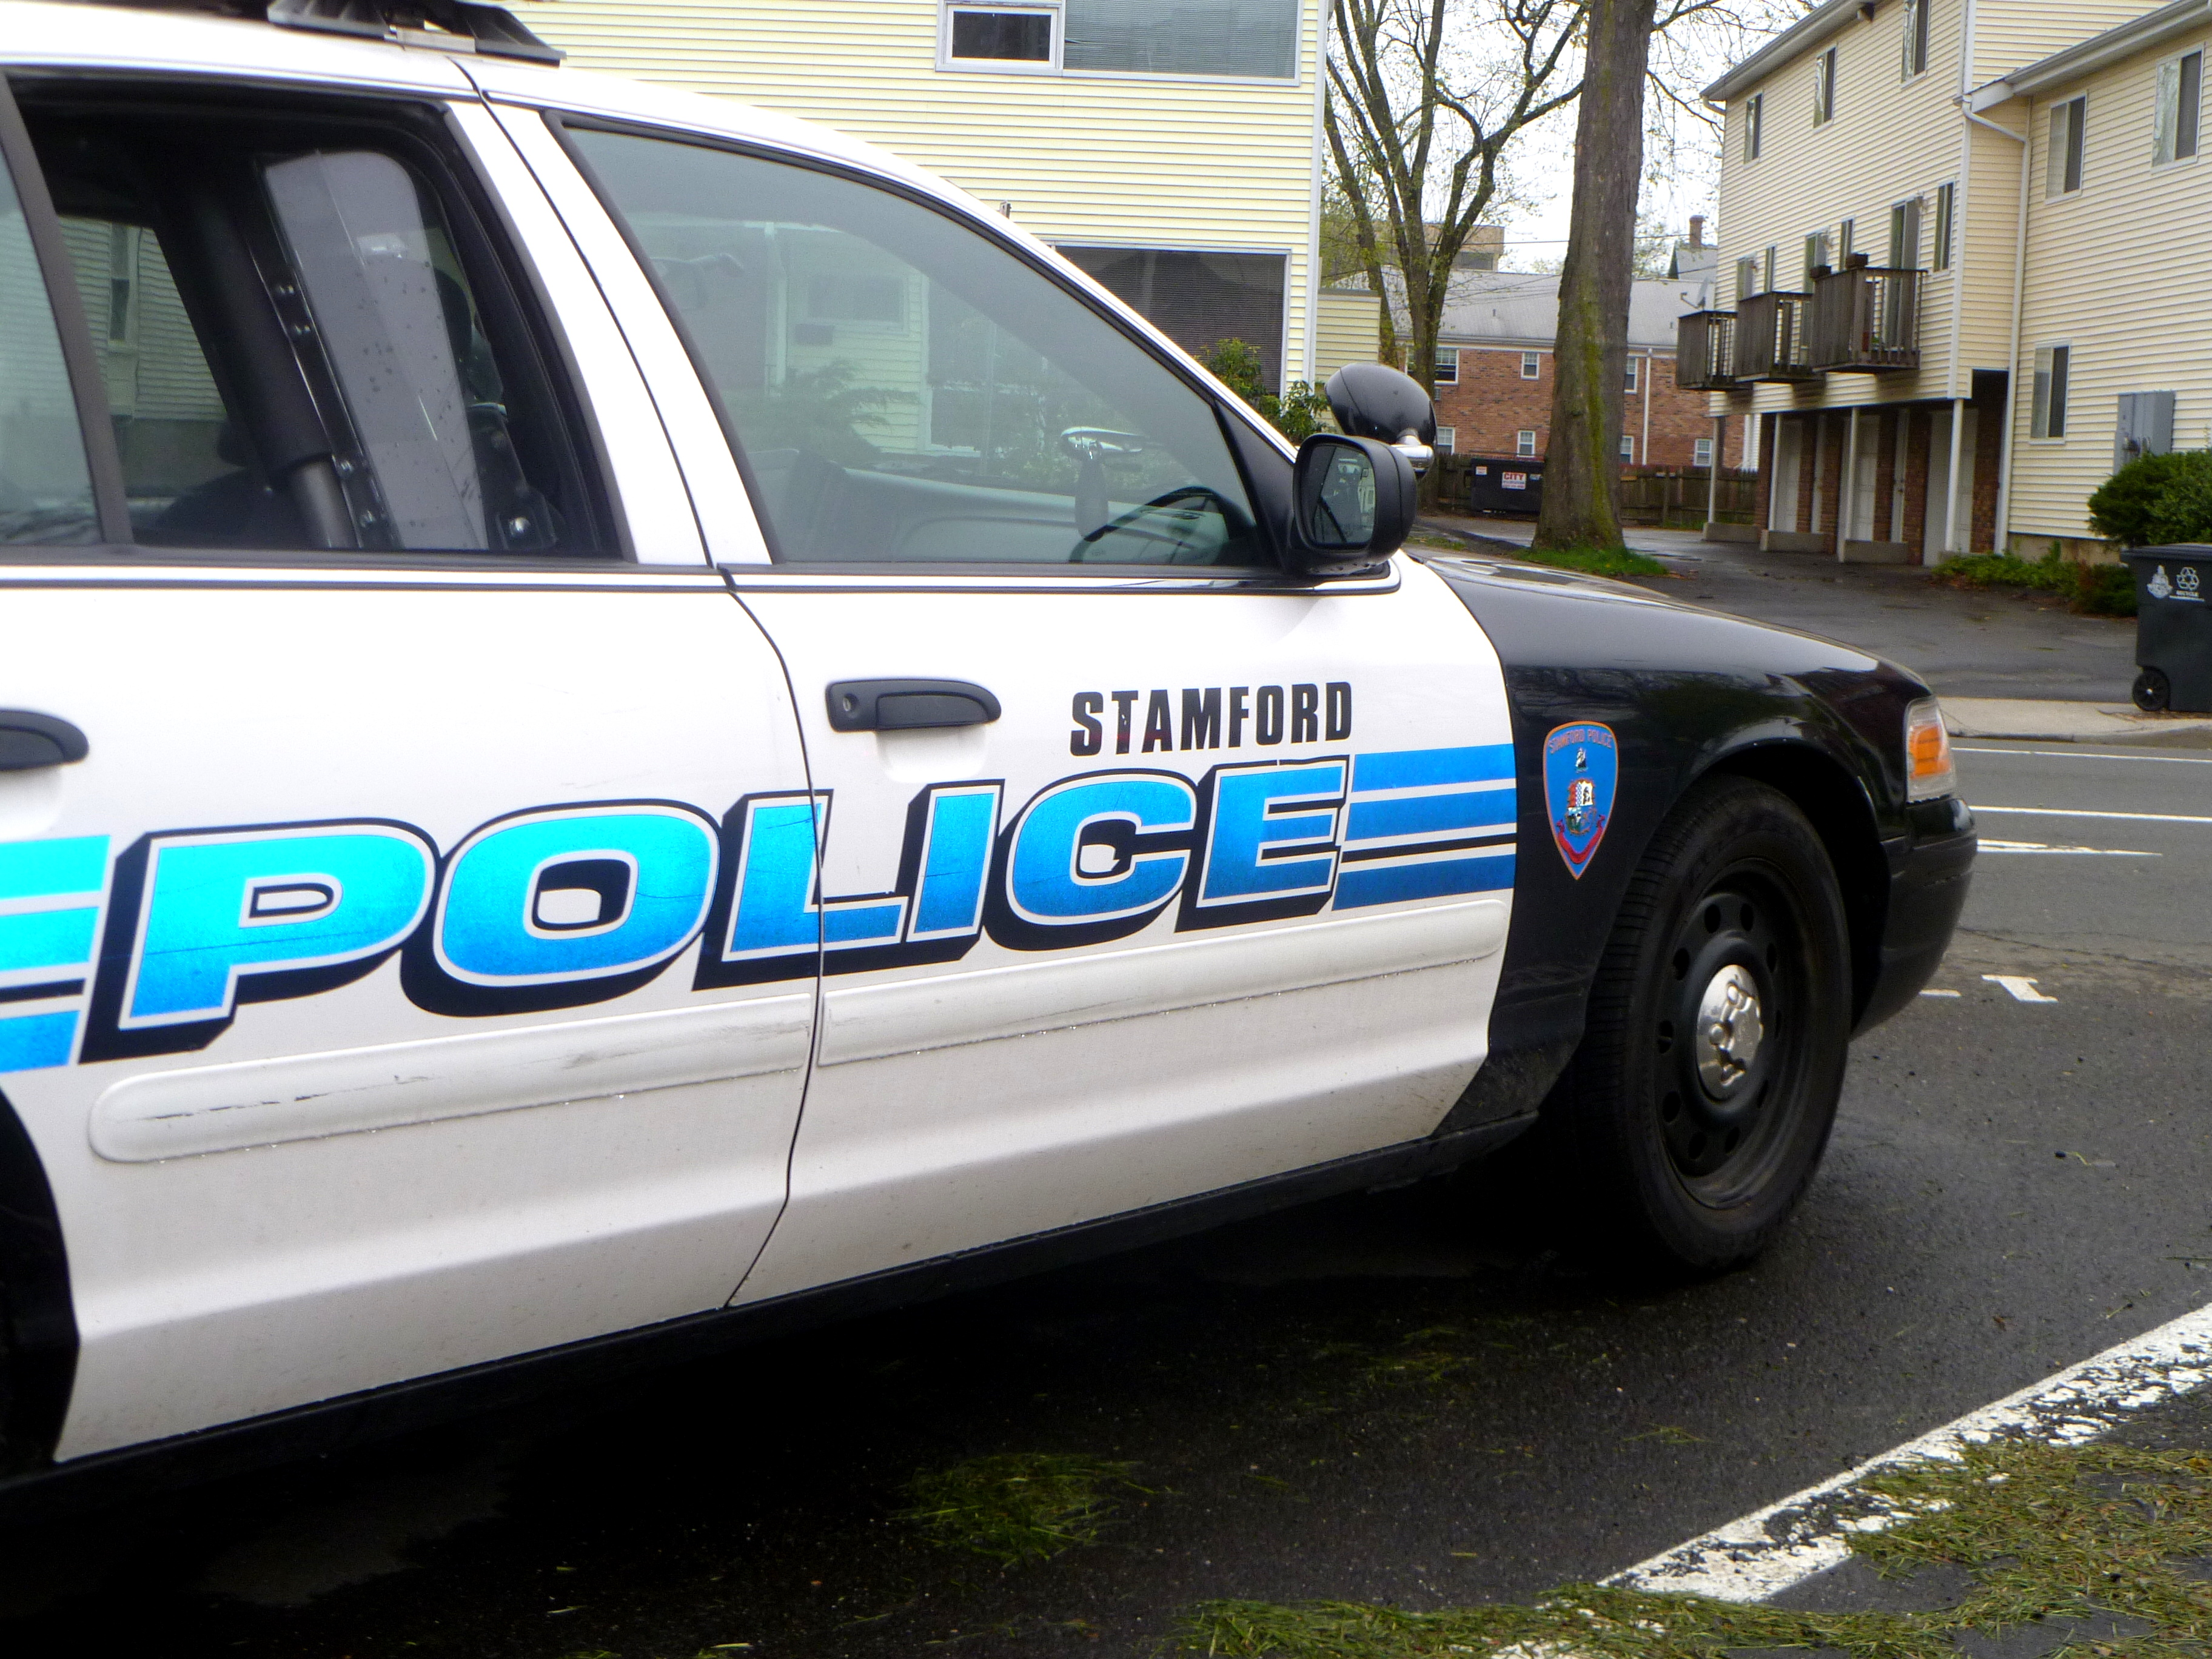 Stamford Police charged a hotel employee with attempted rape after he allegedly forced himself on a guest.